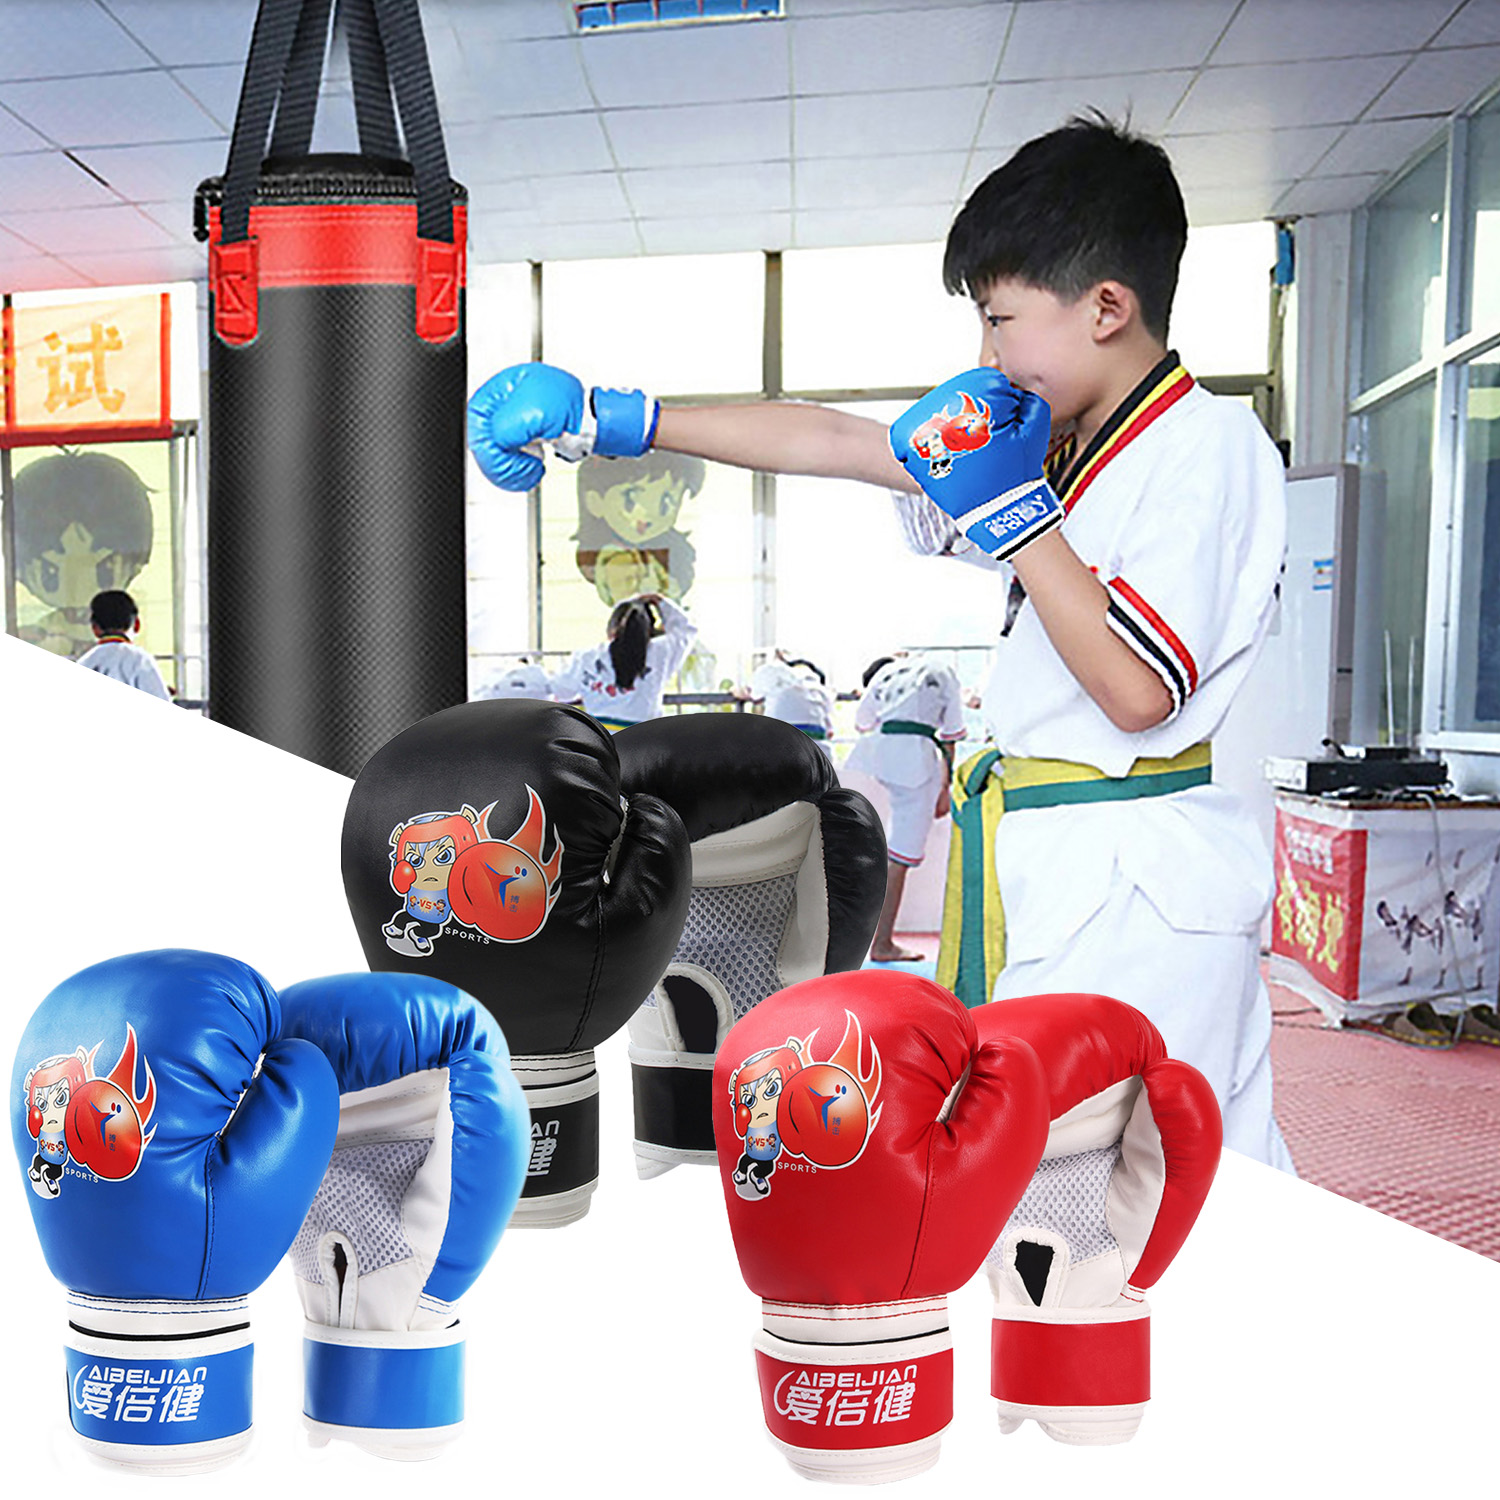 1 Pair Kids Boxing Gloves Punching Bag Training Gloves For Children Junior Sports Kickboxing MMA Muay Thai Sparring